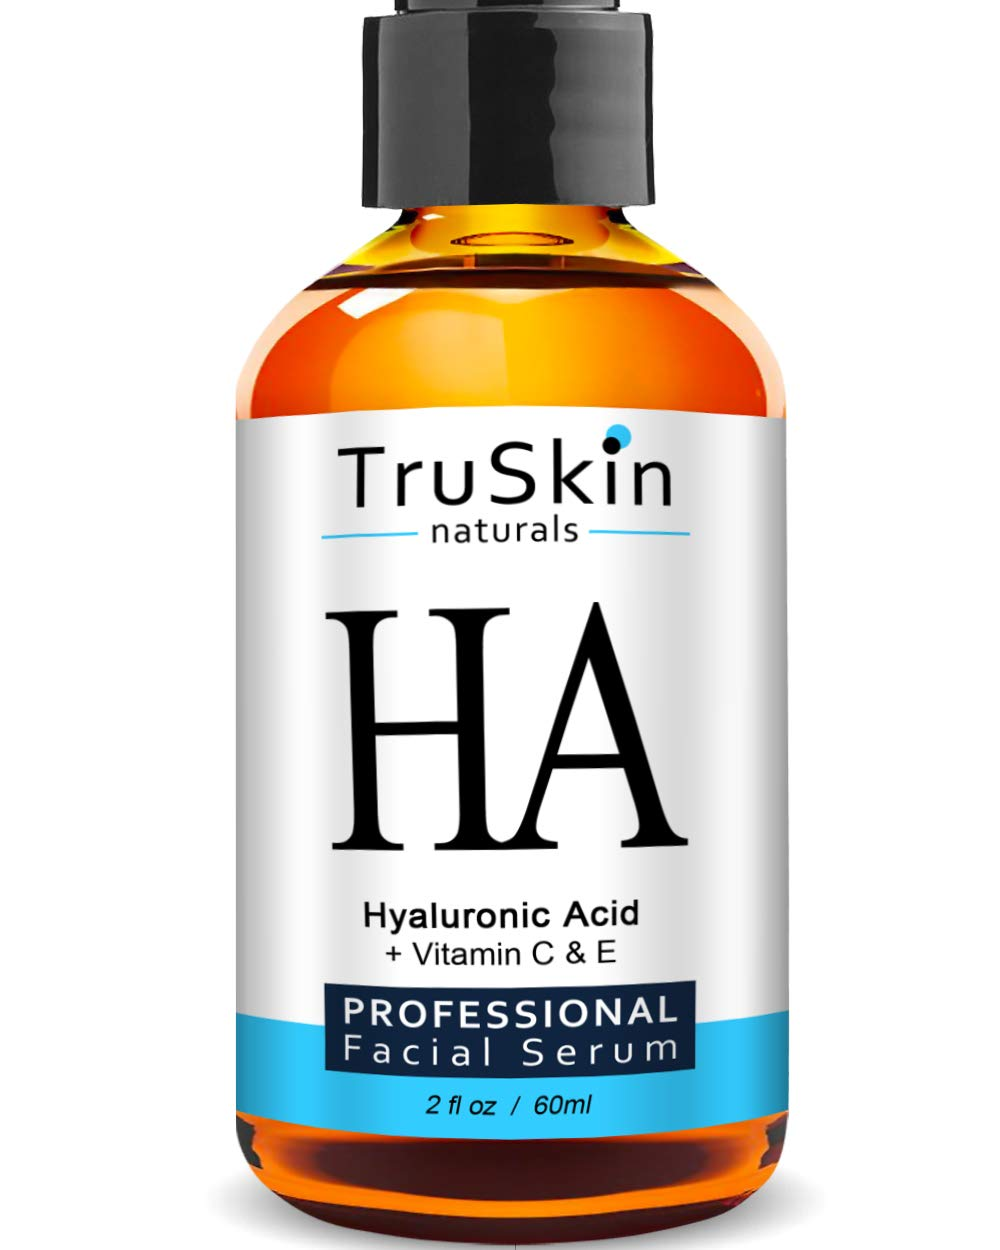 BEST Hyaluronic Acid Serum (BIG 2-OZ Bottle) for Skin & Face with Vitamin C, E, Organic Jojoba Oil, Natural Aloe and MSM - Deeply Hydrates & Plumps Skin to Fill-in Fine Lines & Wrinkles TruSkin Naturals Hyaluronic Acid Serum 2-oz